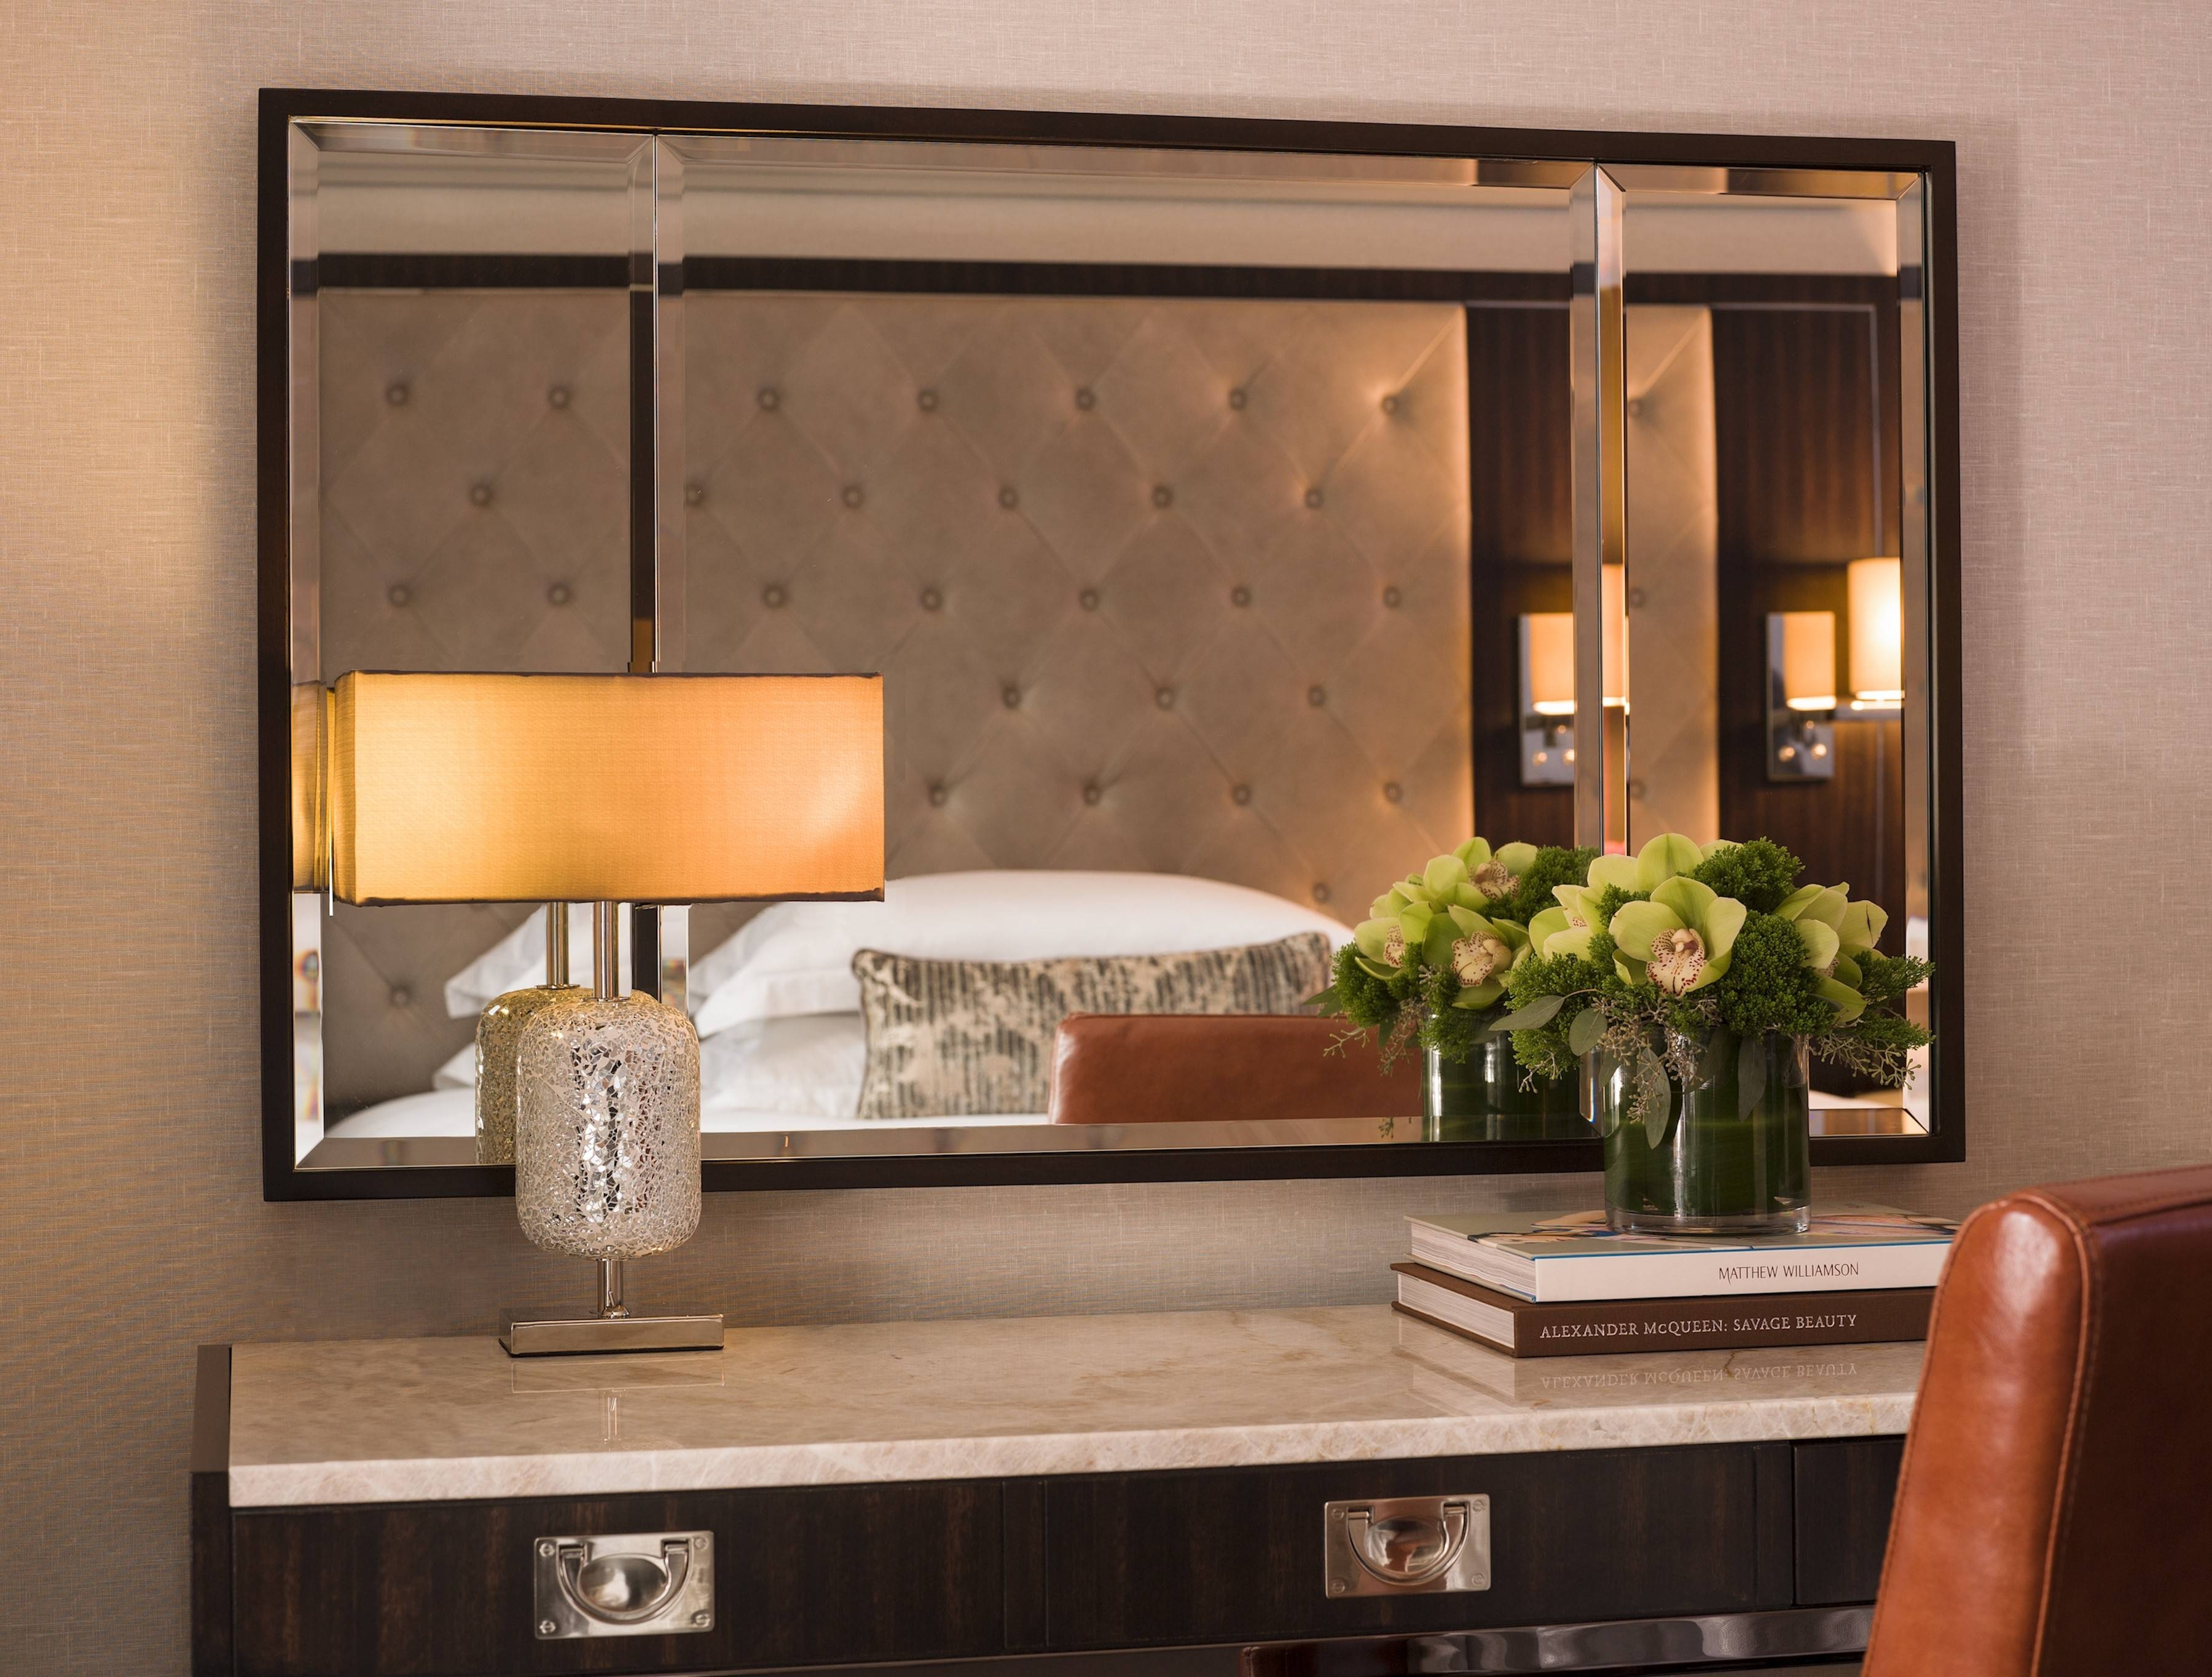 10 Design Ideas To Steal From Hotels | Huffpost with regard to Hotel Inspired Mirrors (Image 1 of 15)